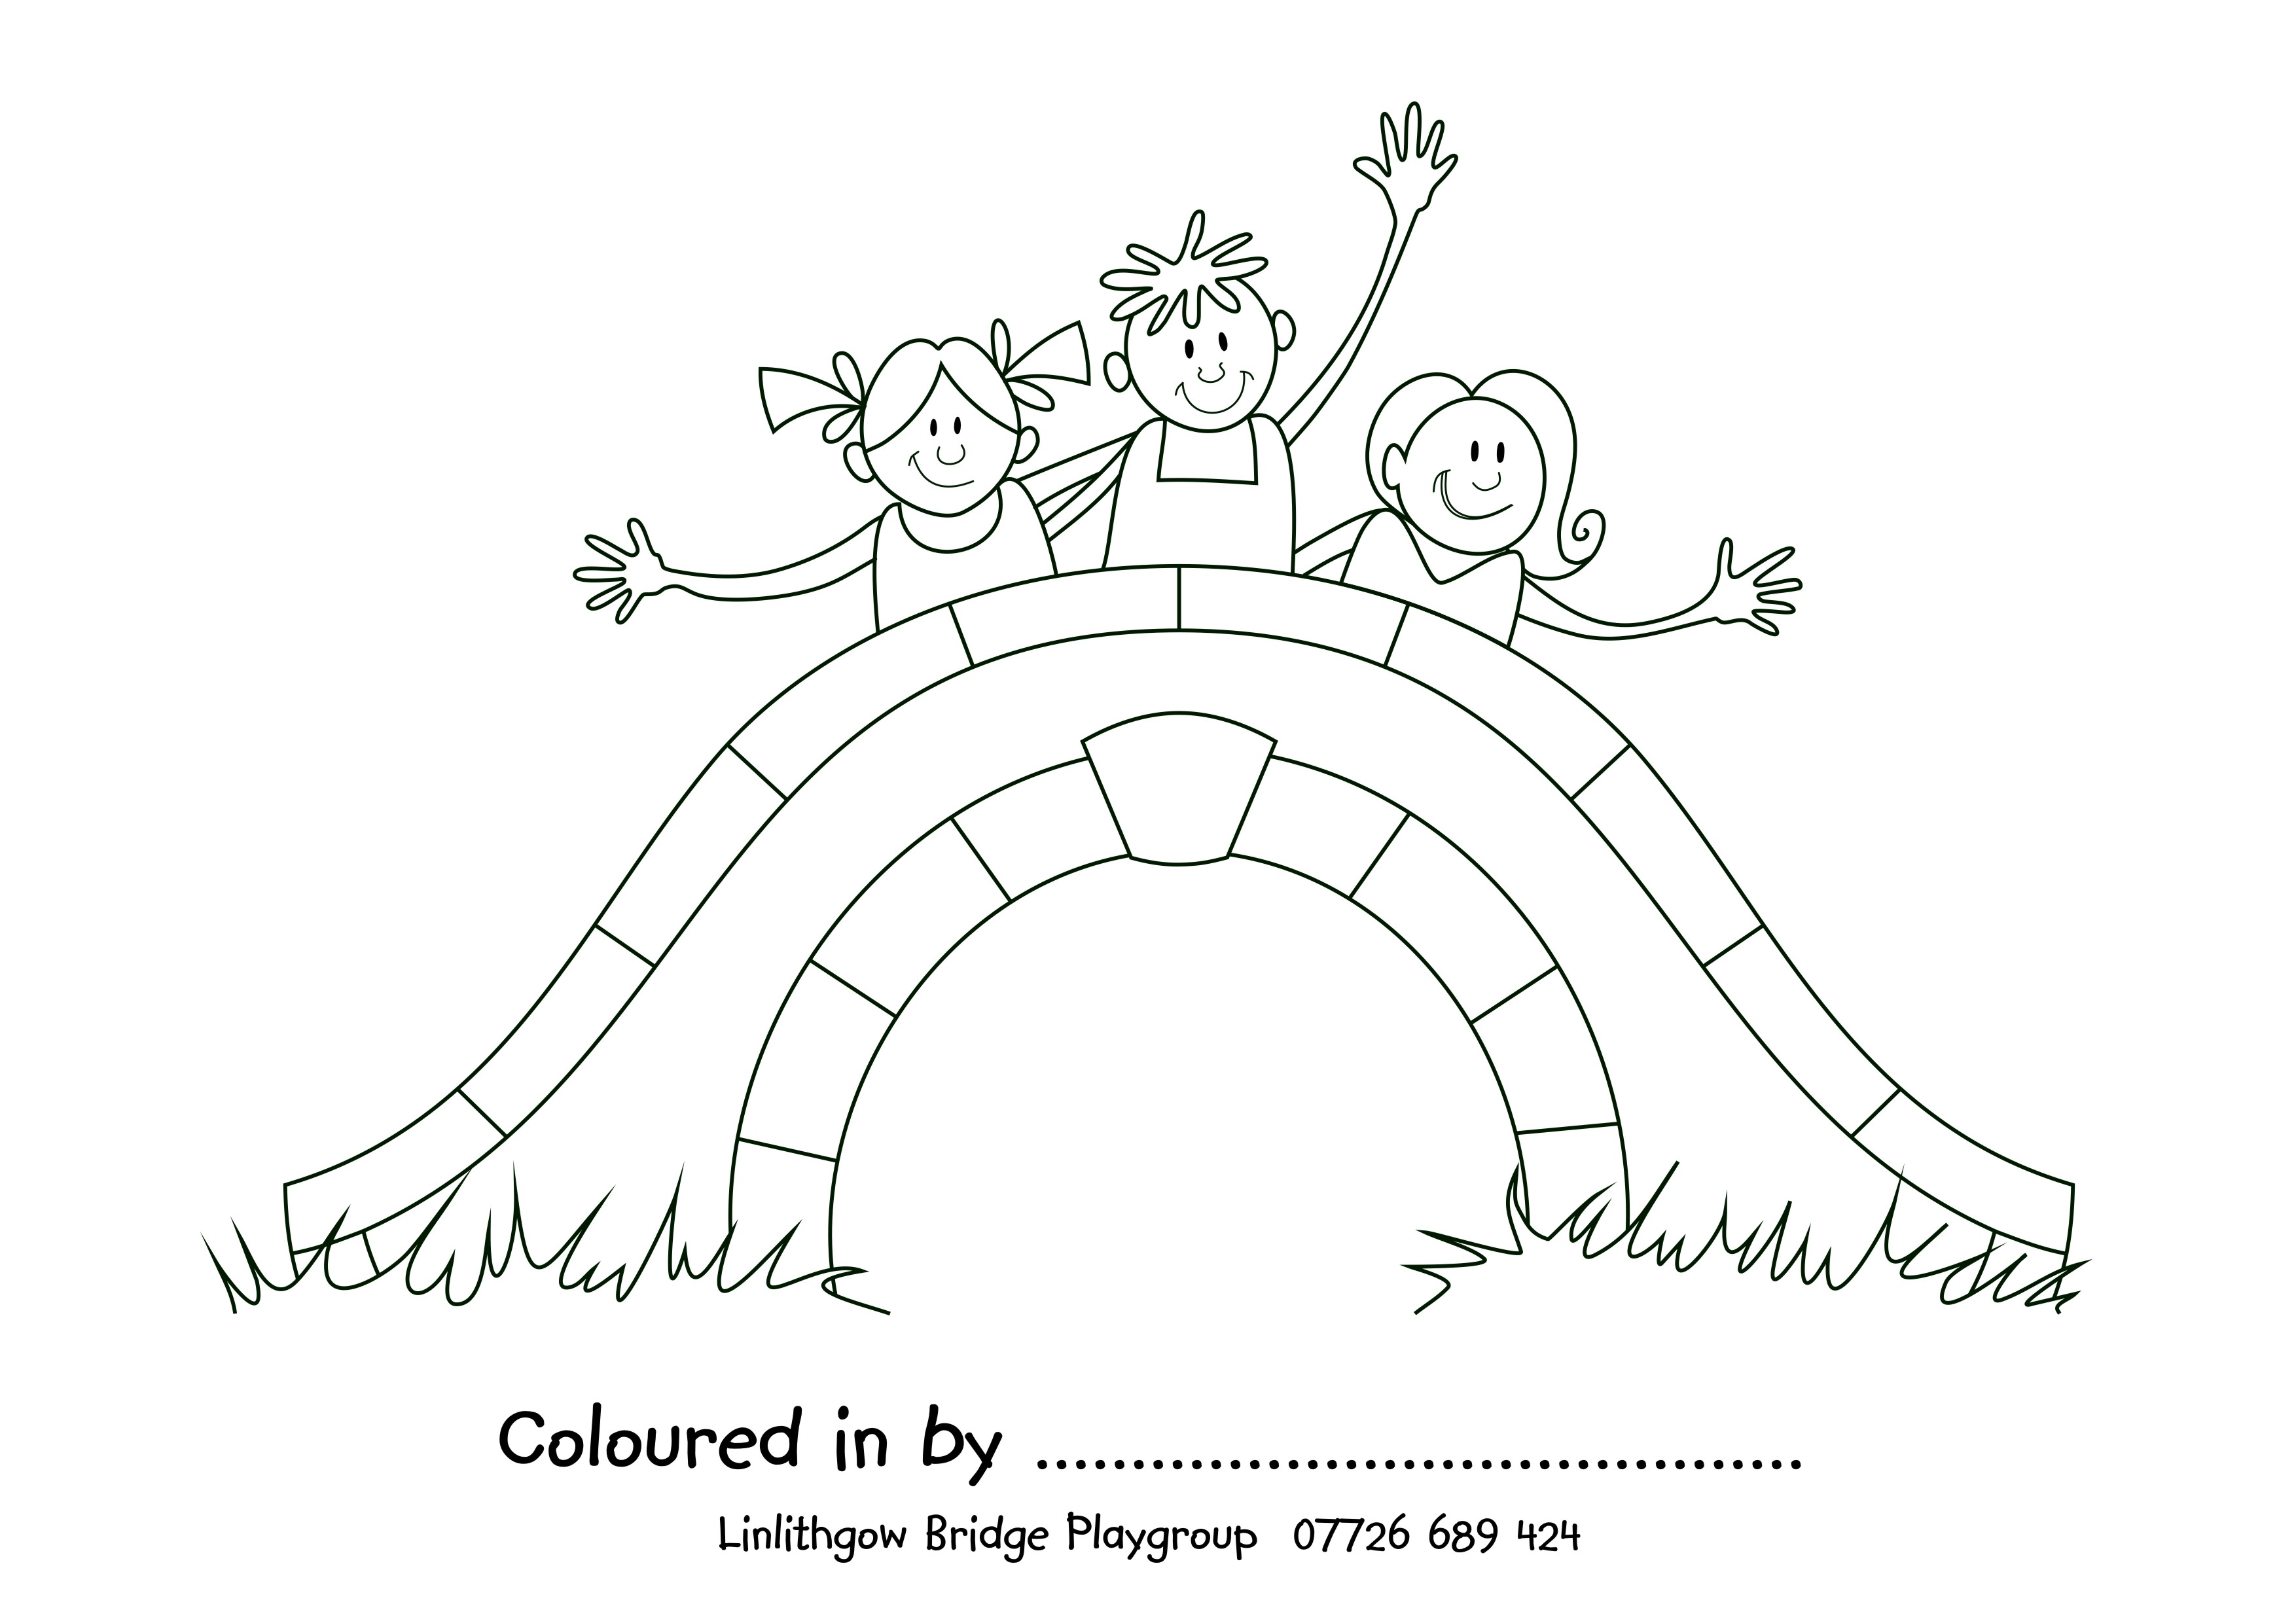 brooklyn bridge coloring pages - photo#19